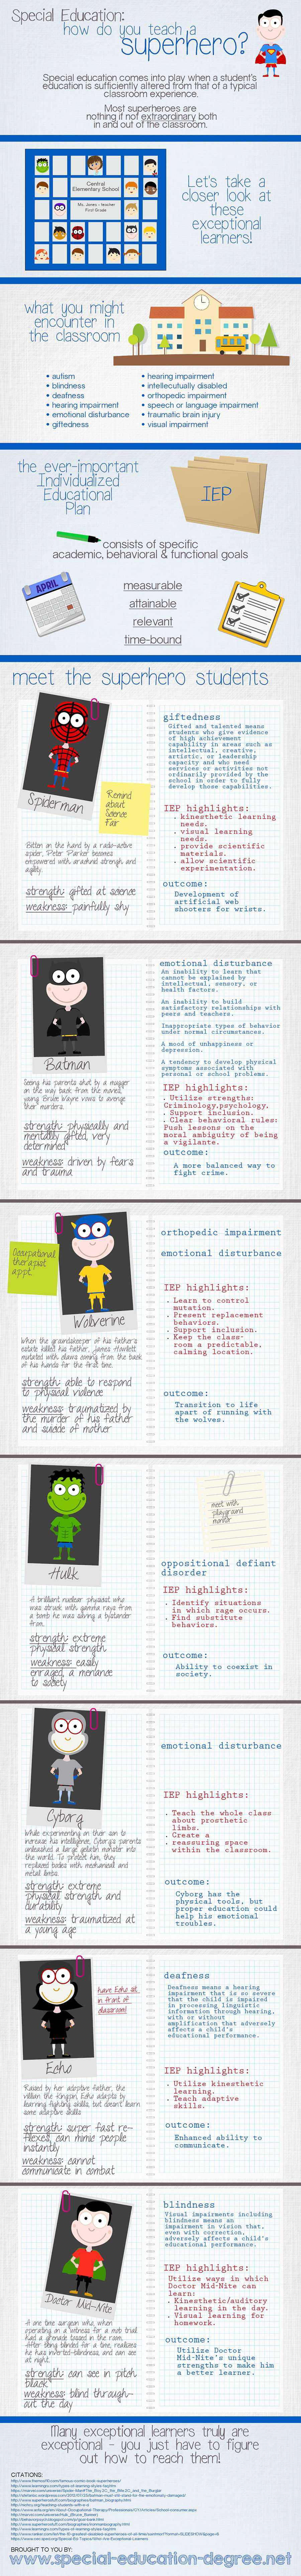 special education teaching special child infographic